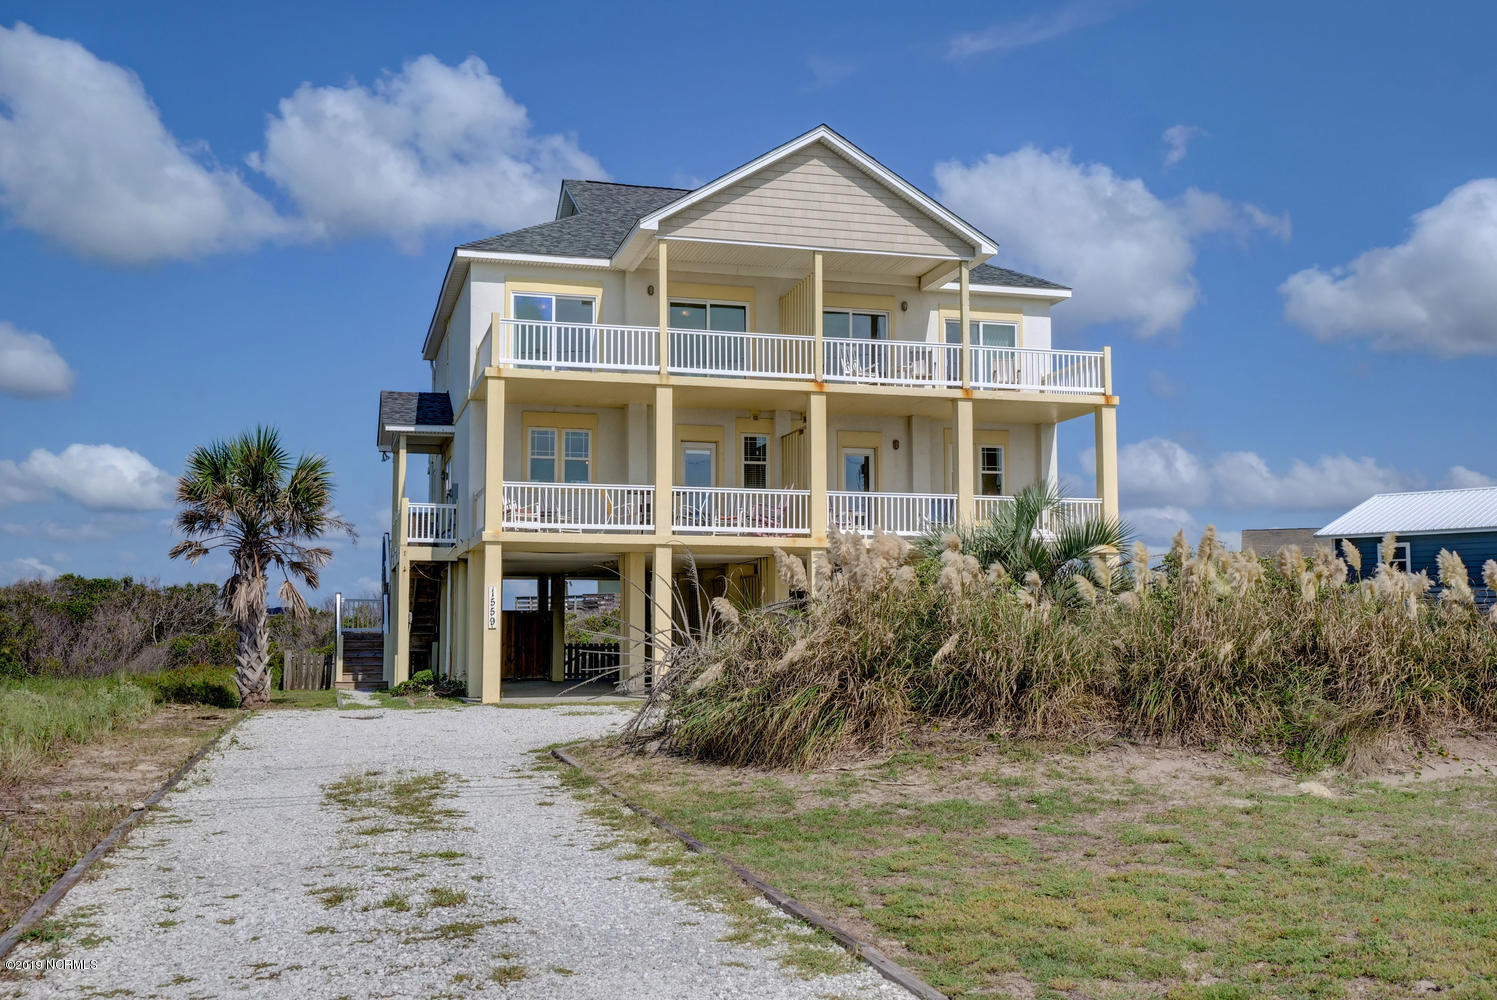 1559 New River Inlet Road, North Topsail Beach, North Carolina 28460, 3 Bedrooms Bedrooms, ,2 BathroomsBathrooms,Residential,For Sale,New River Inlet,100186308